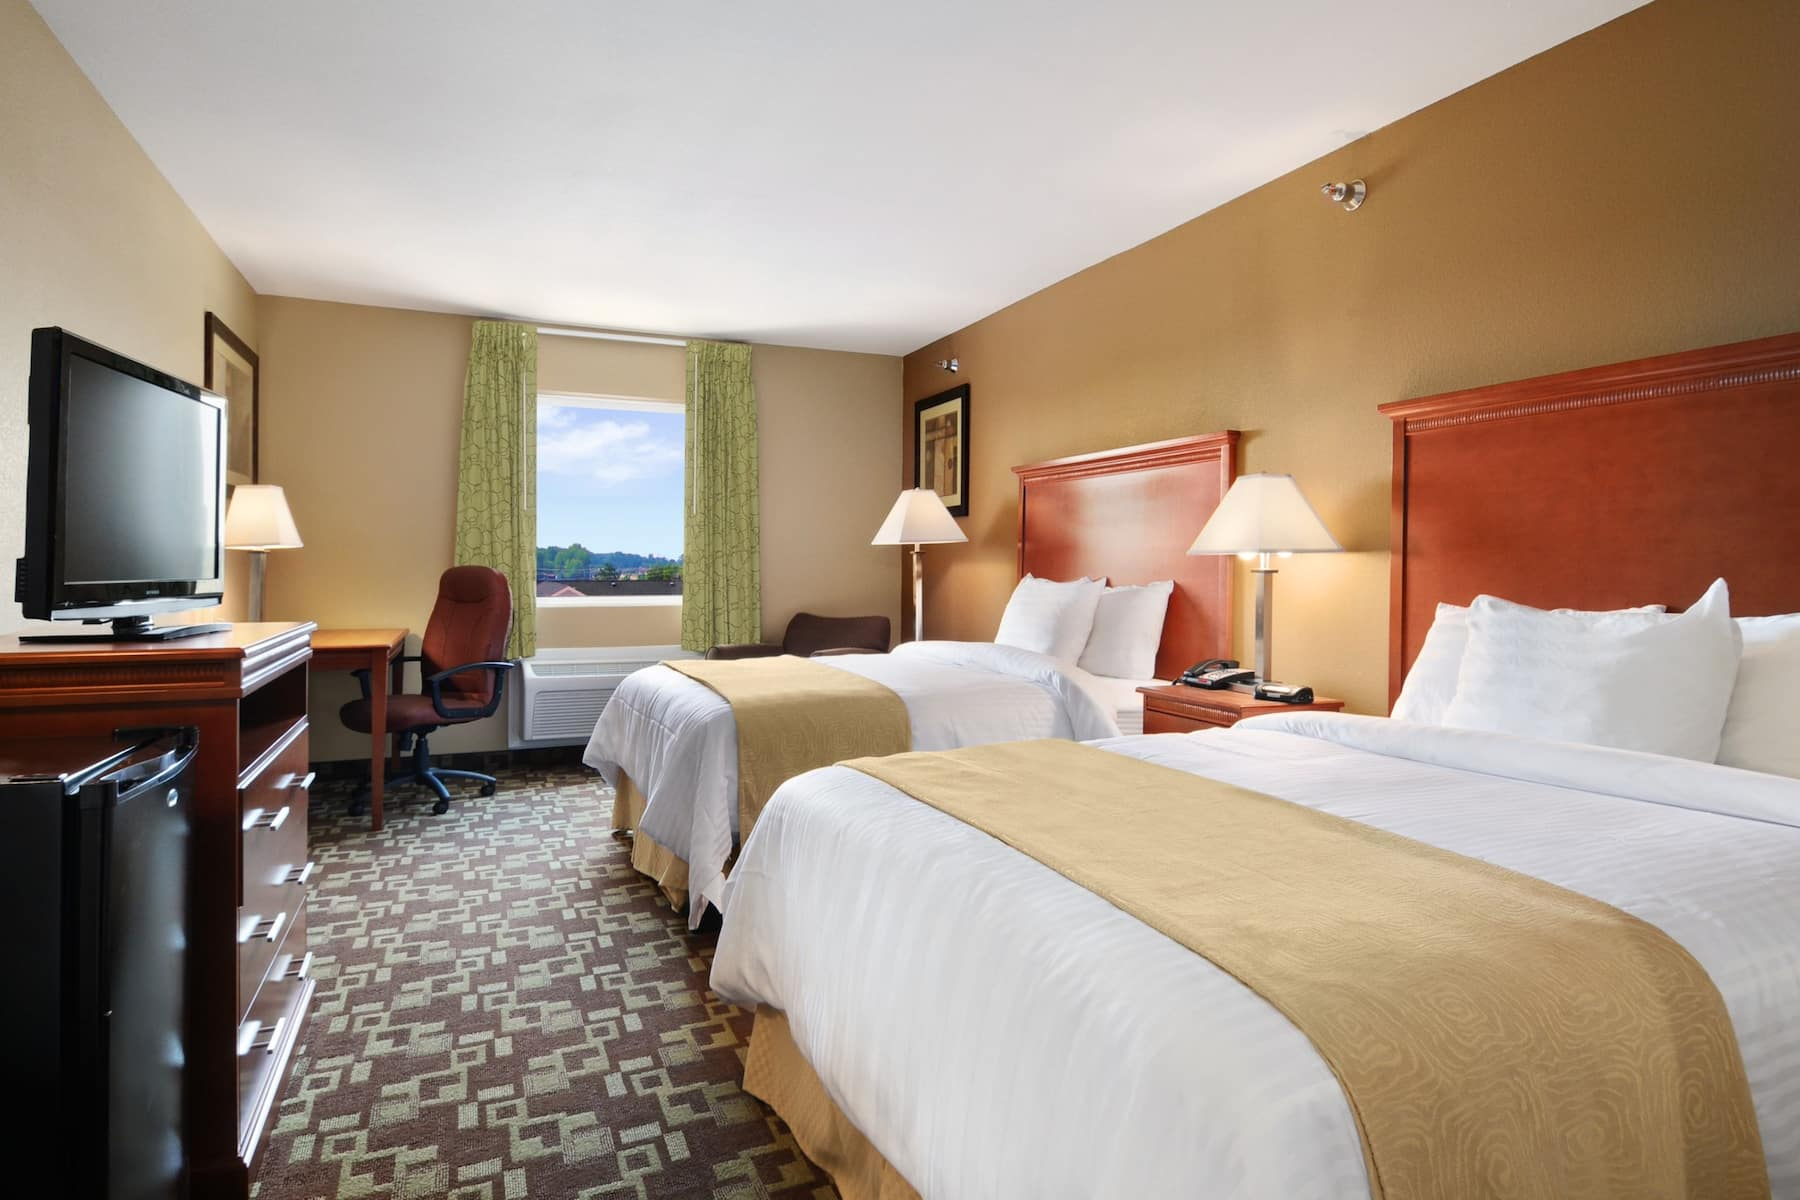 Guest room at the Days Inn & Suites by Wyndham Cabot in Cabot, Arkansas